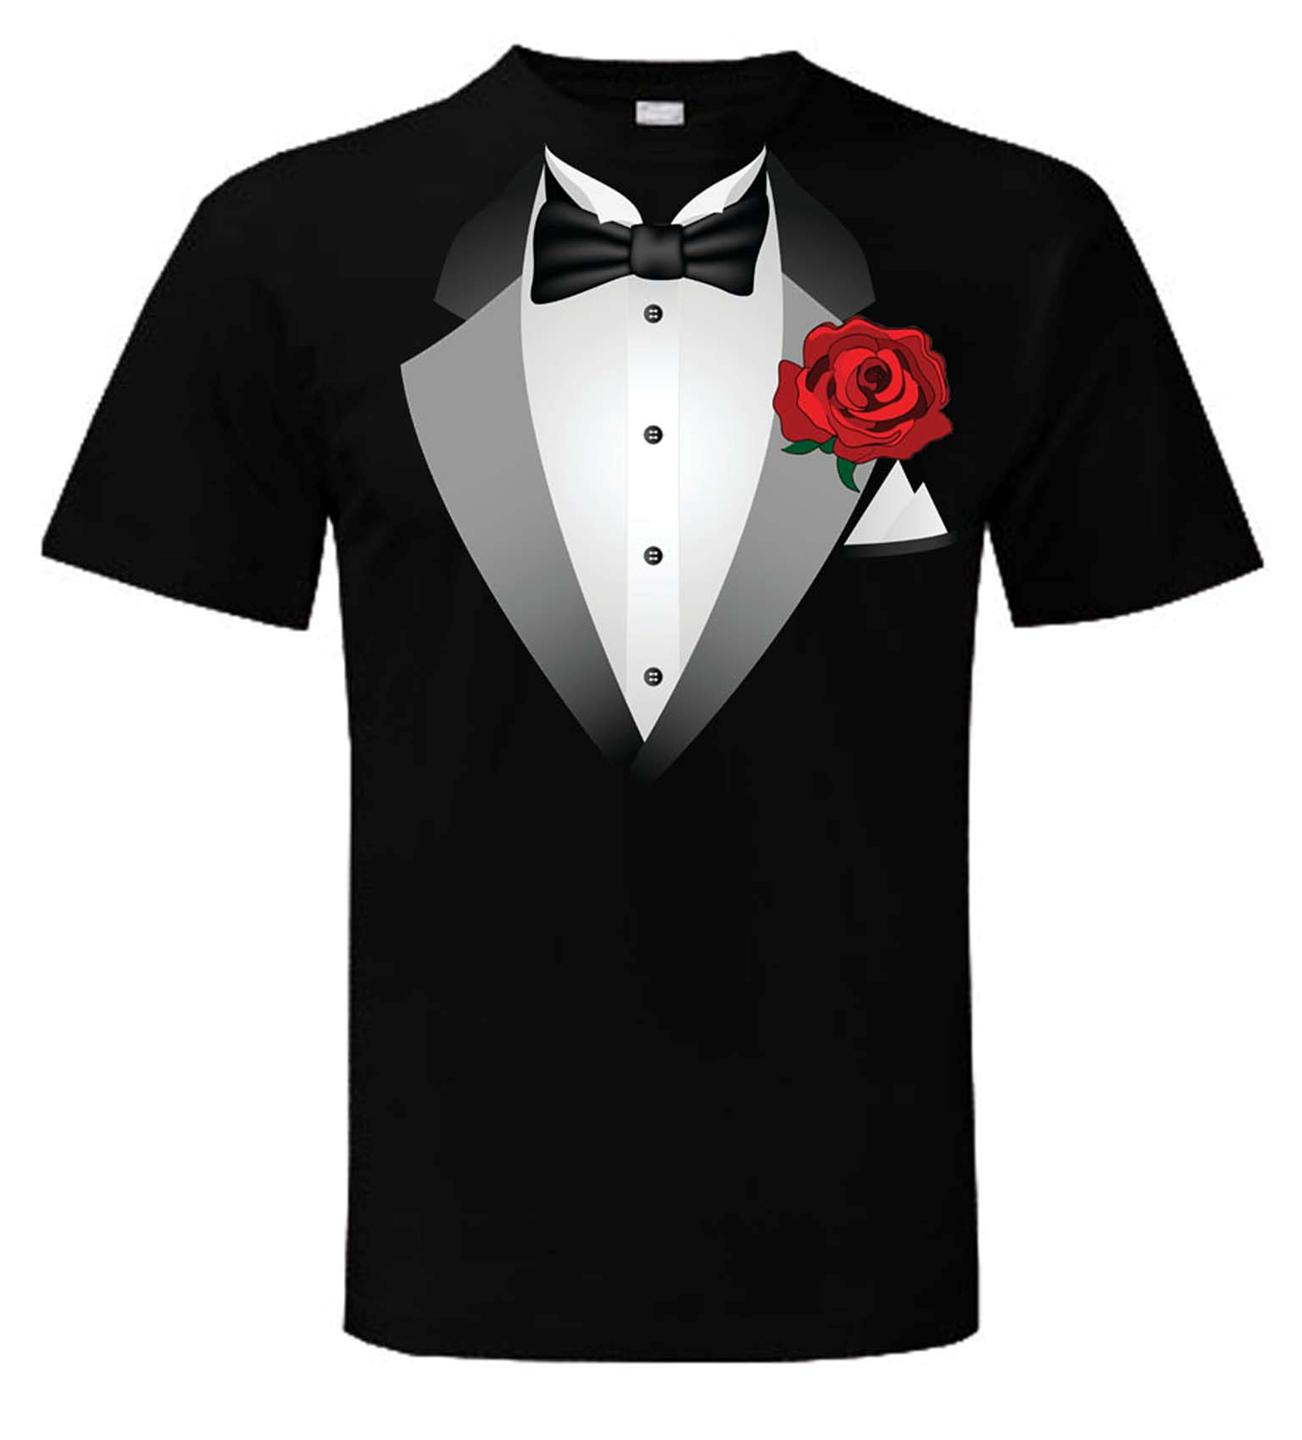 Tuxedo T Shirt Fancy Dress Outfit Stag Party Tux